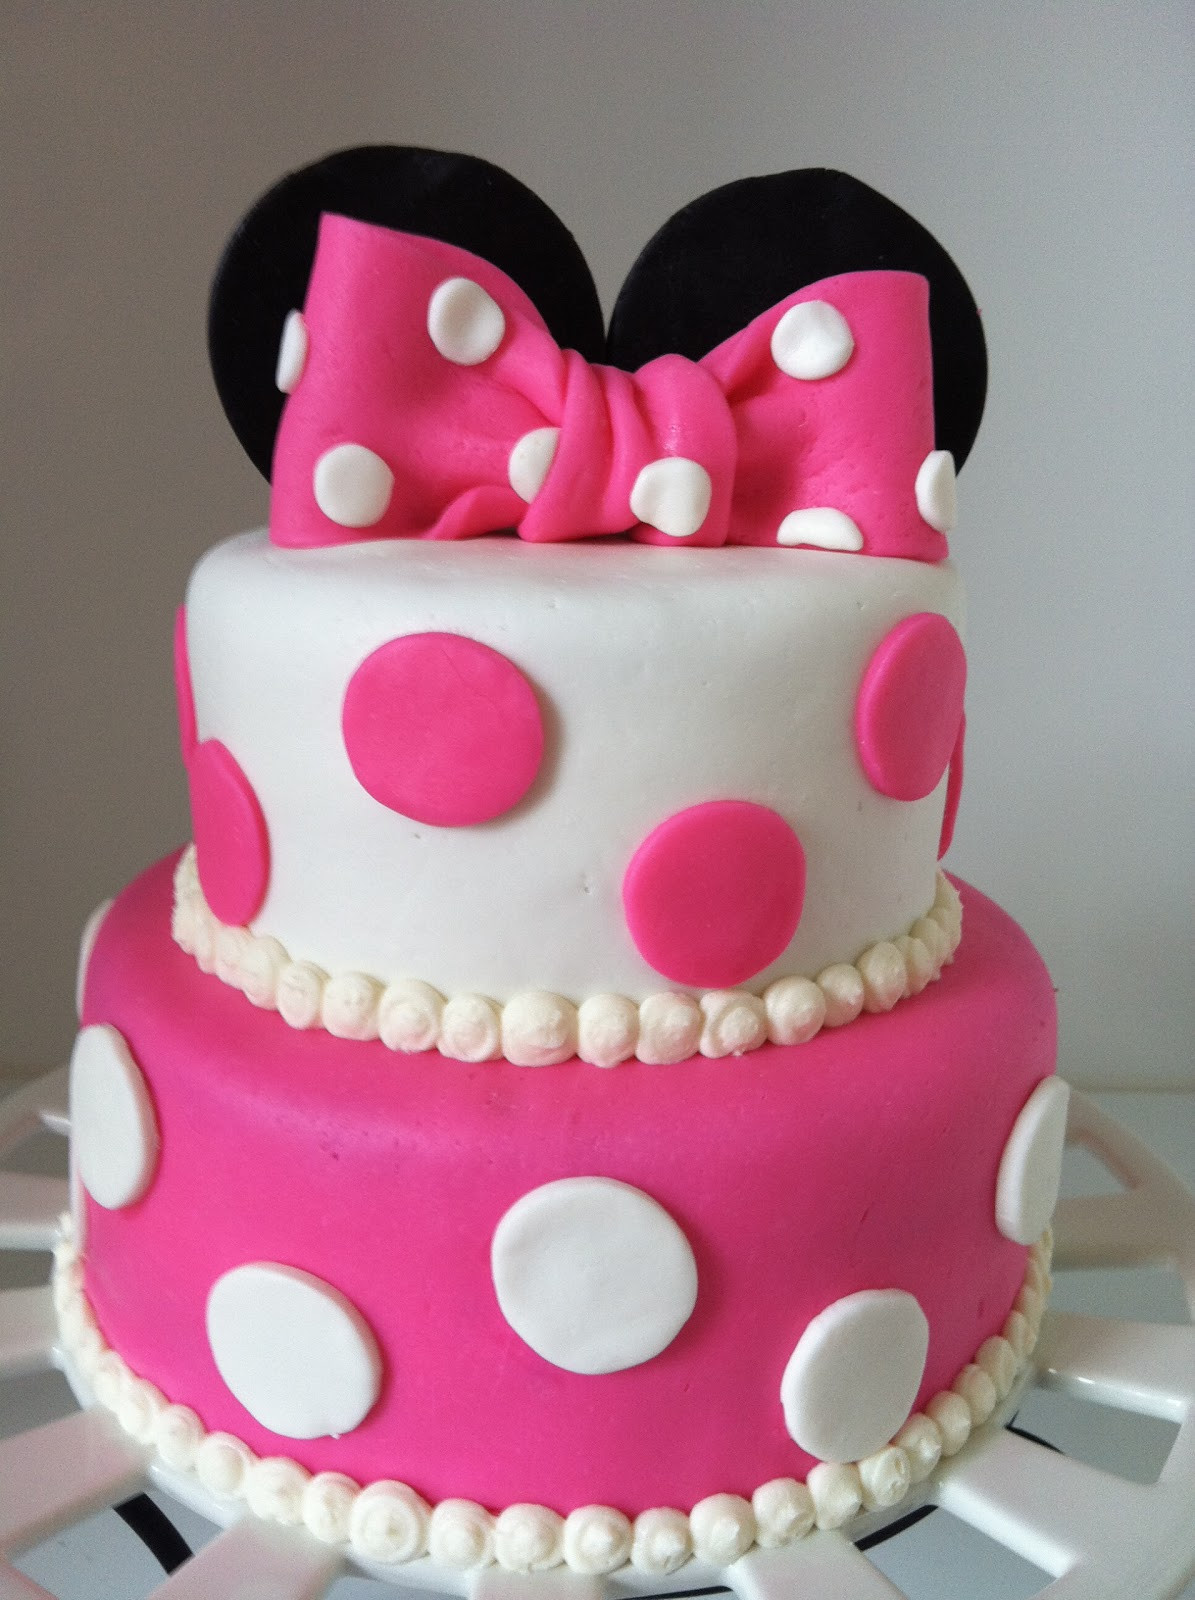 Best ideas about 2nd Birthday Cake . Save or Pin The Weekly Sweet Experiment Rachel s 2nd Birthday Cake Now.